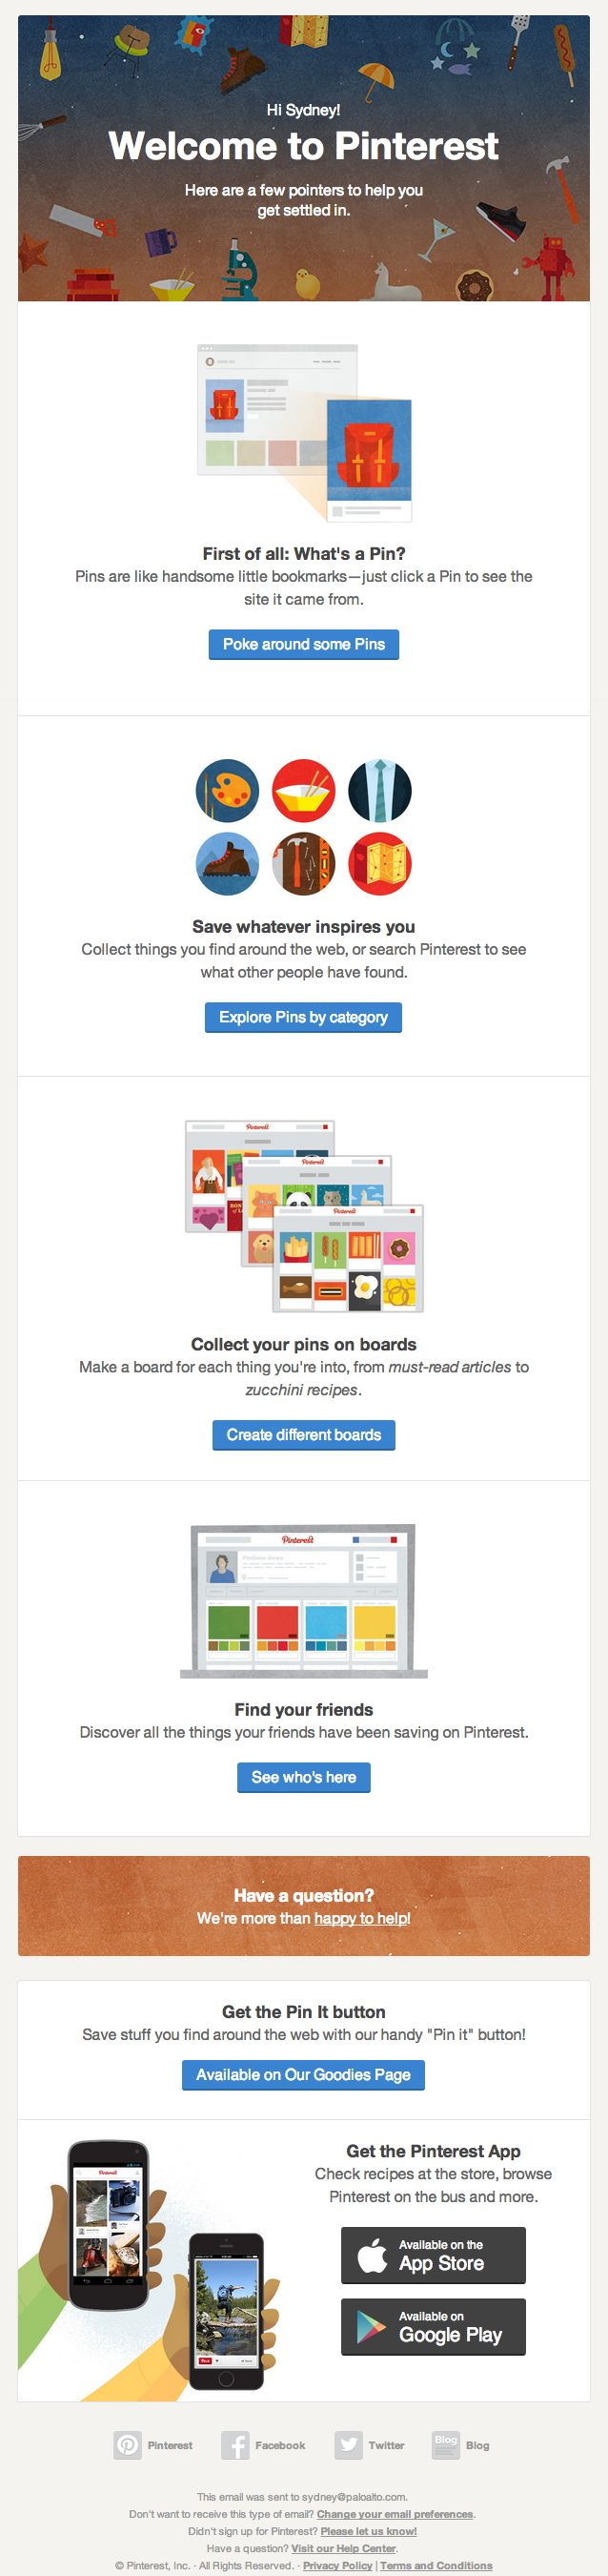 the 16 best images about email marketing on pinterest newsletter